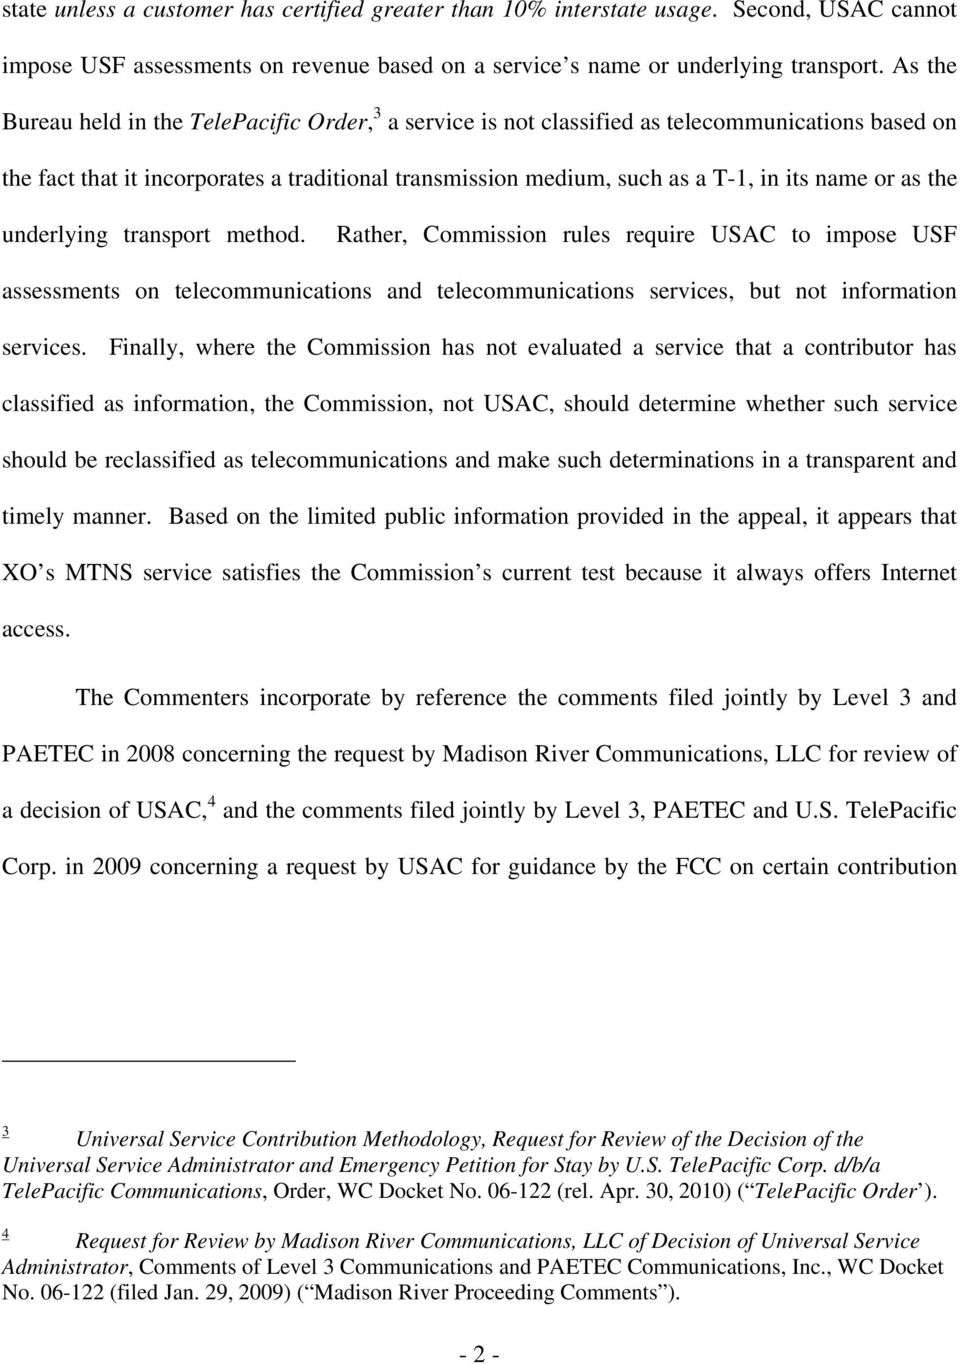 or as the underlying transport method. Rather, Commission rules require USAC to impose USF assessments on telecommunications and telecommunications services, but not information services.